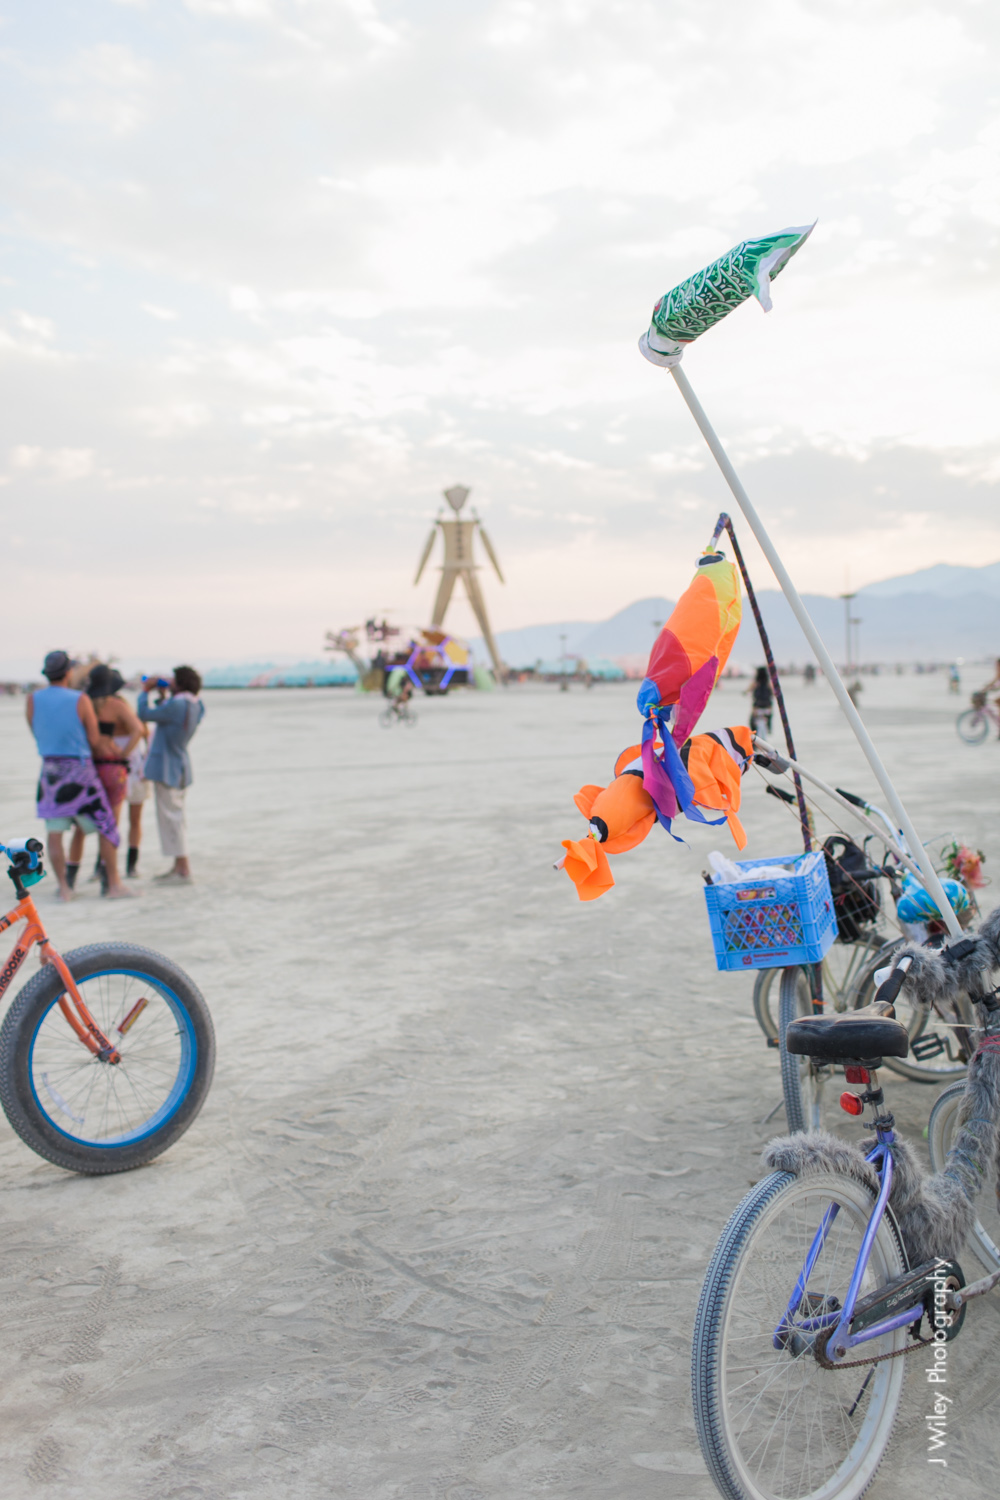 burning man 2014 caravansary art car playa temple-28